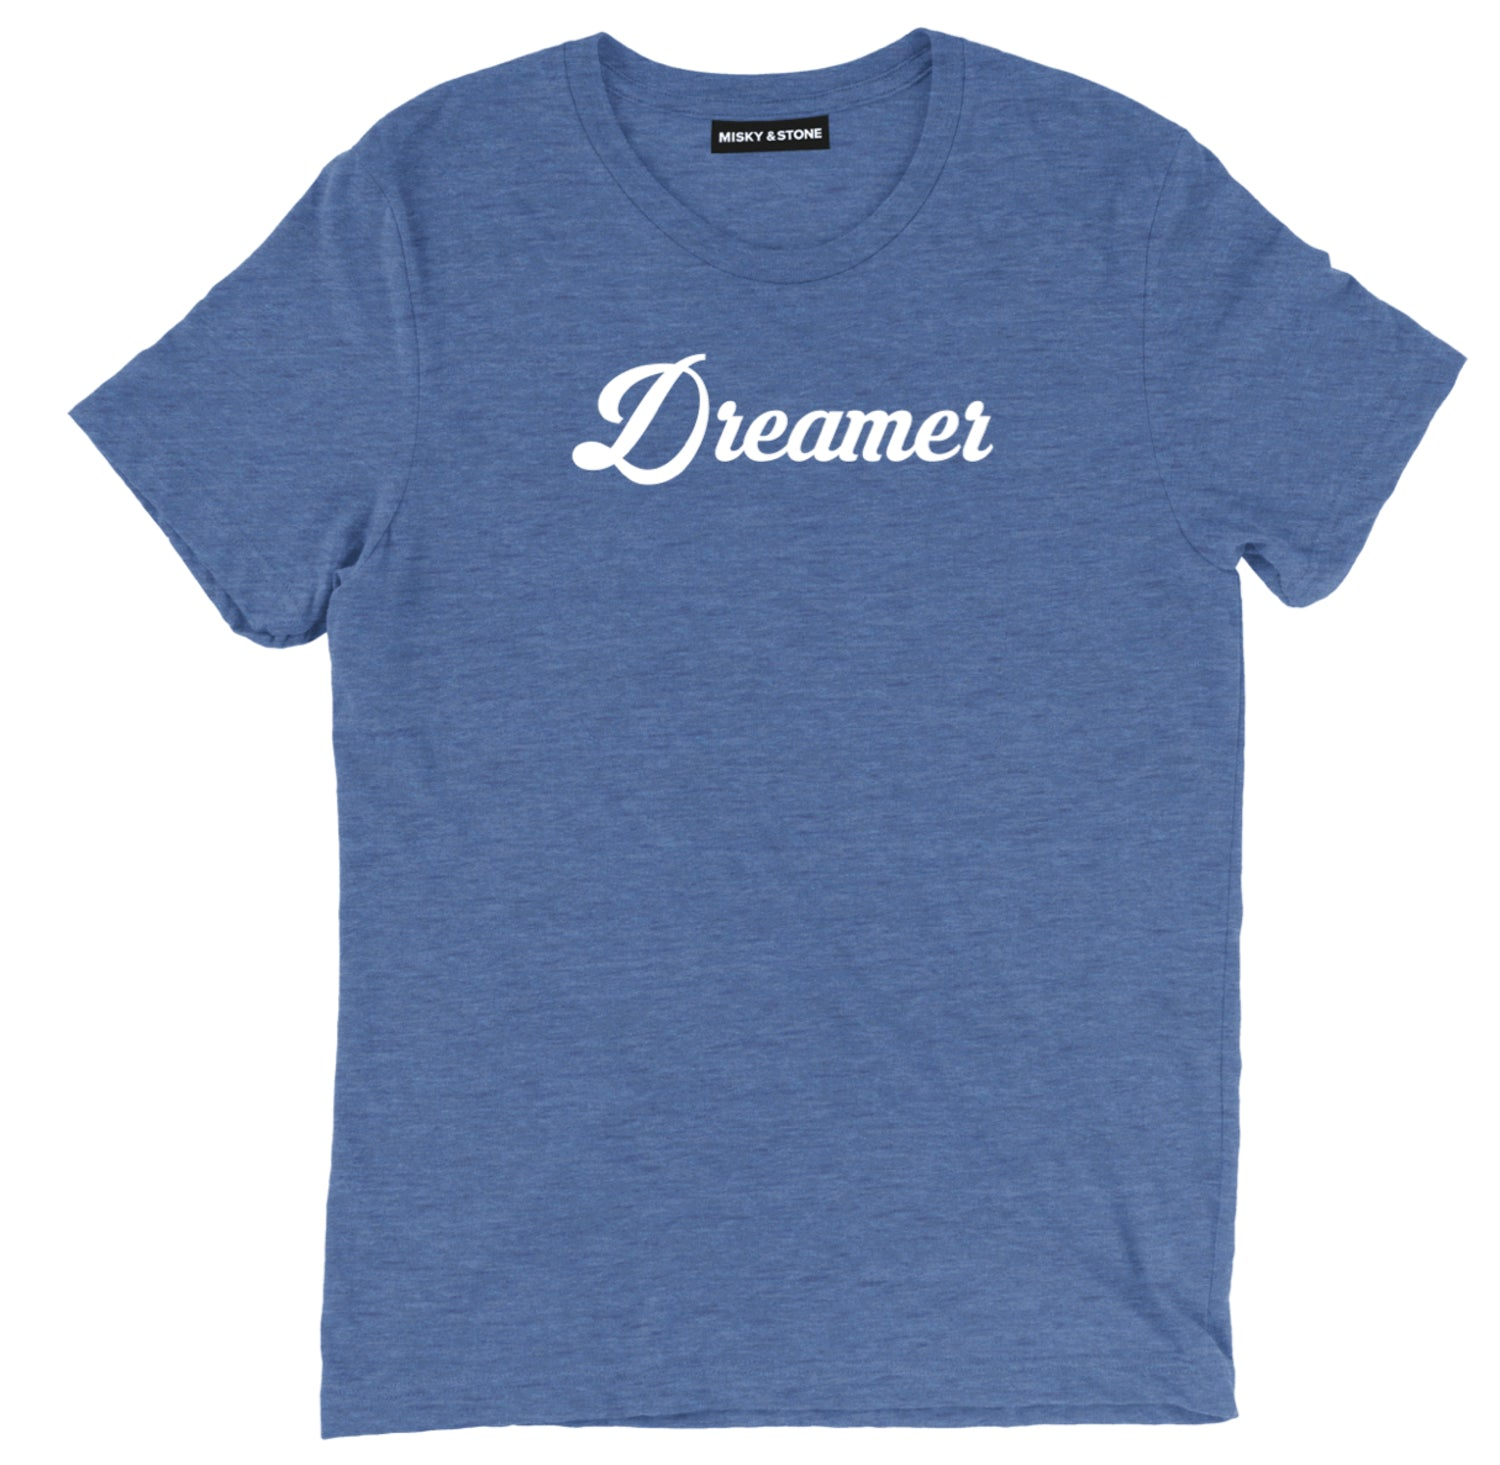 Dreamer Pop Culture Political Unisex Tee Shirt